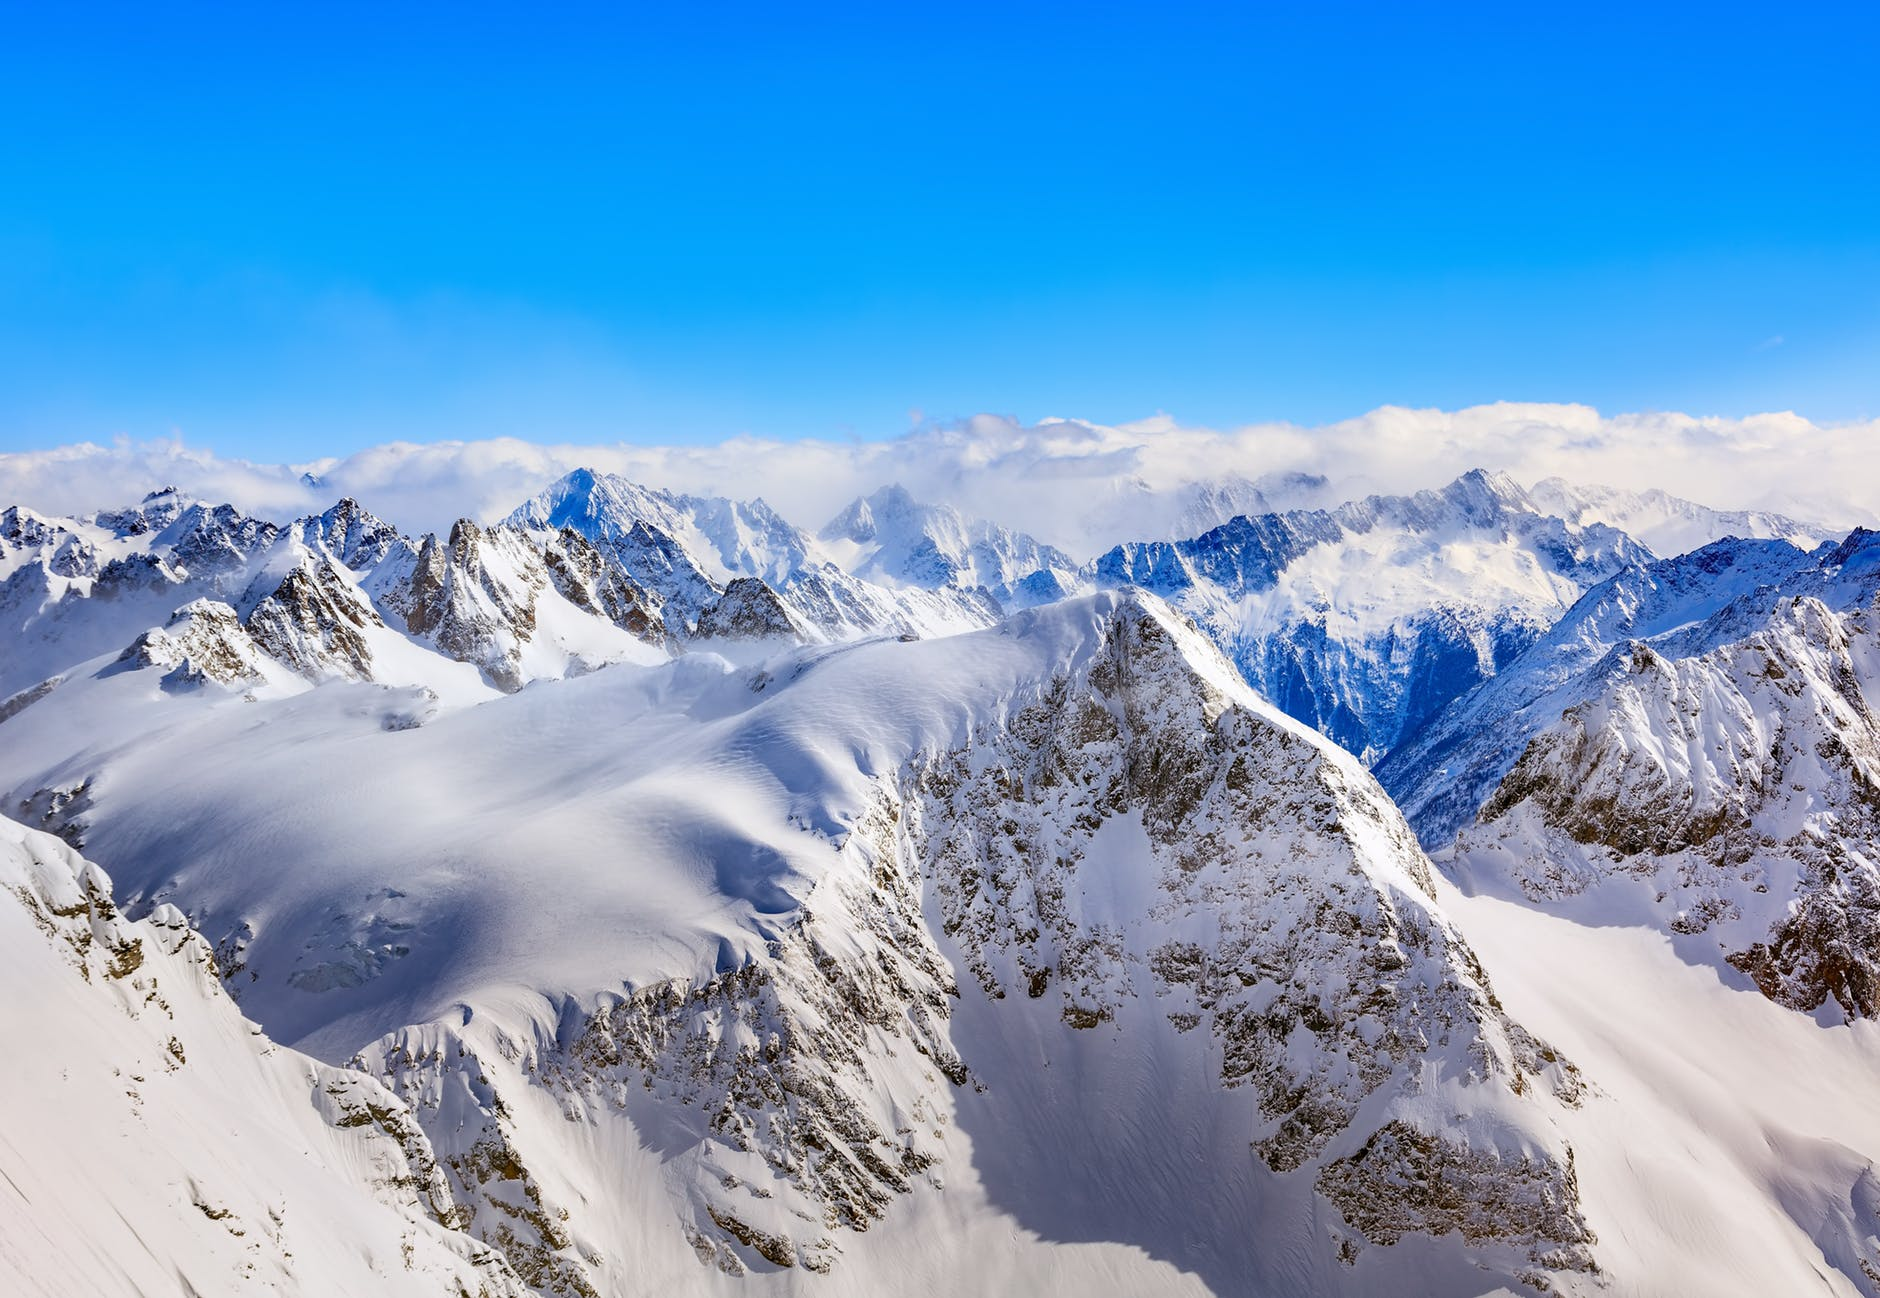 areal photography of snow coated mountains under clear blue sky